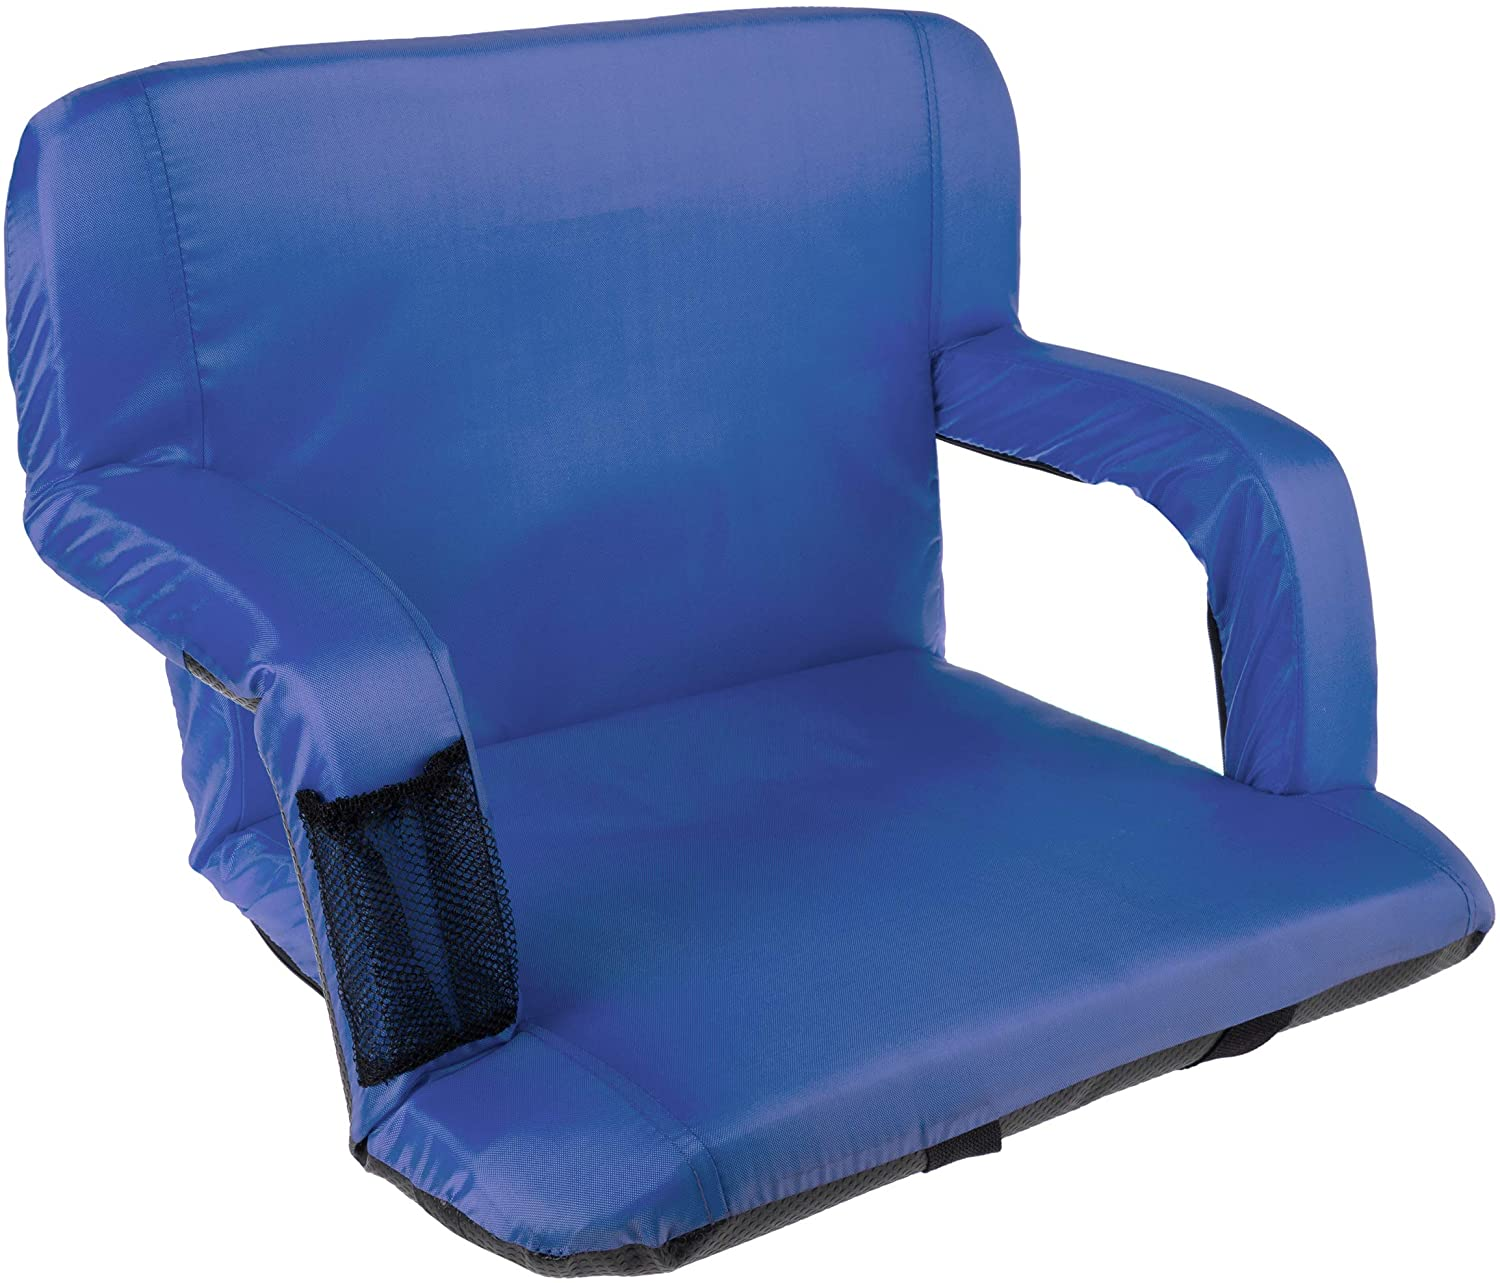 Home-Complete Wide Stadium Seat Chair Bleacher Cushion with Padded Back Support, Armrests, 6 Reclining Positions and Portable Carry Straps, Blue